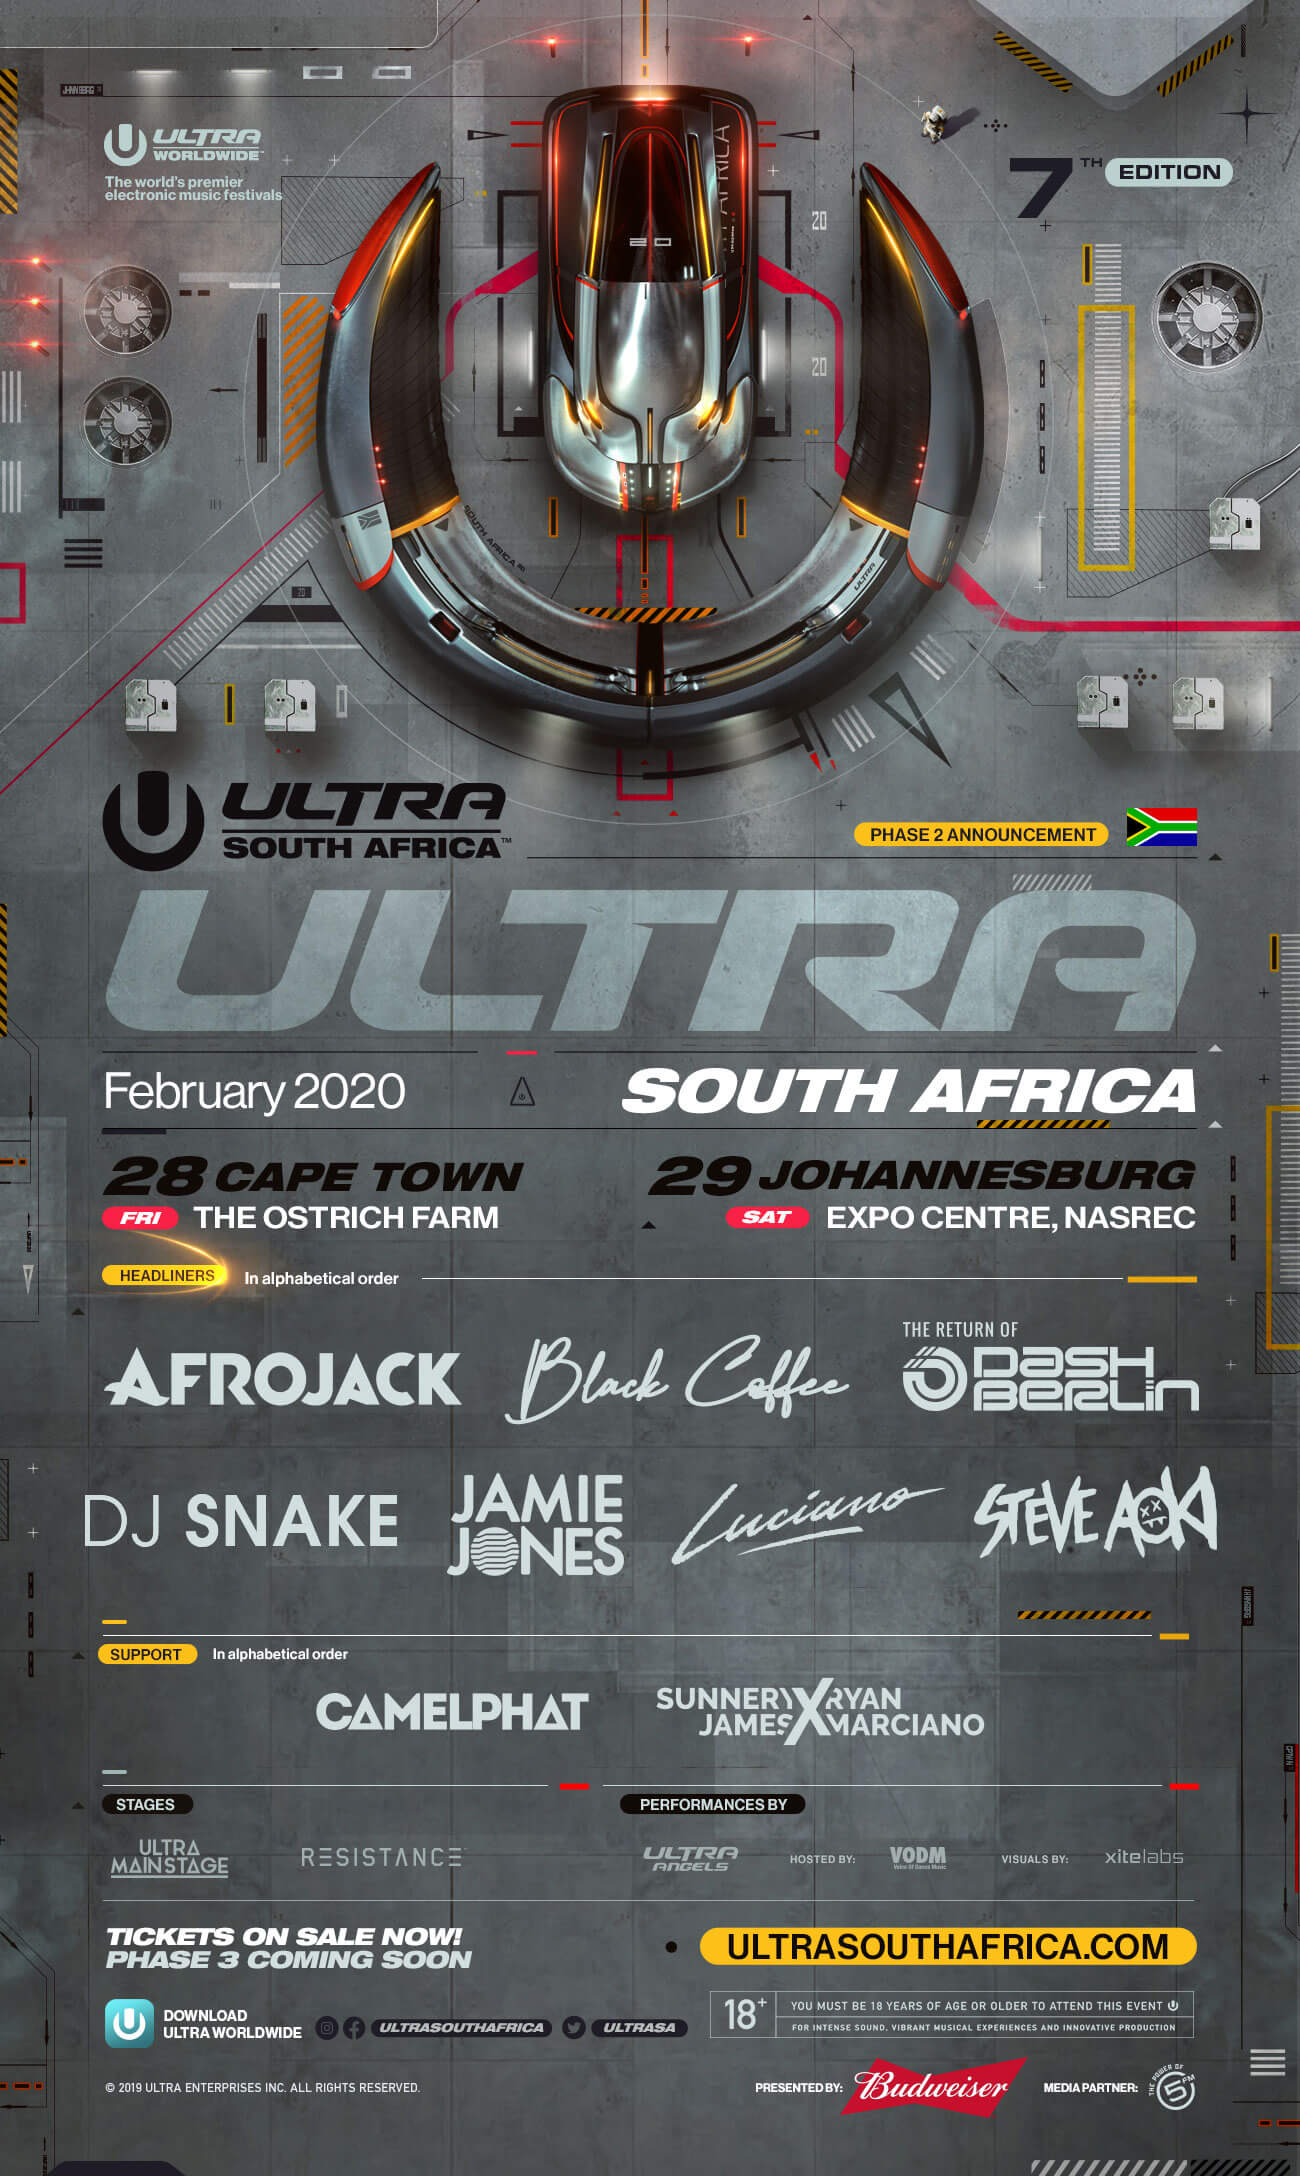 ULTRA South Africa 2020 Announces Phase 2 Lineup